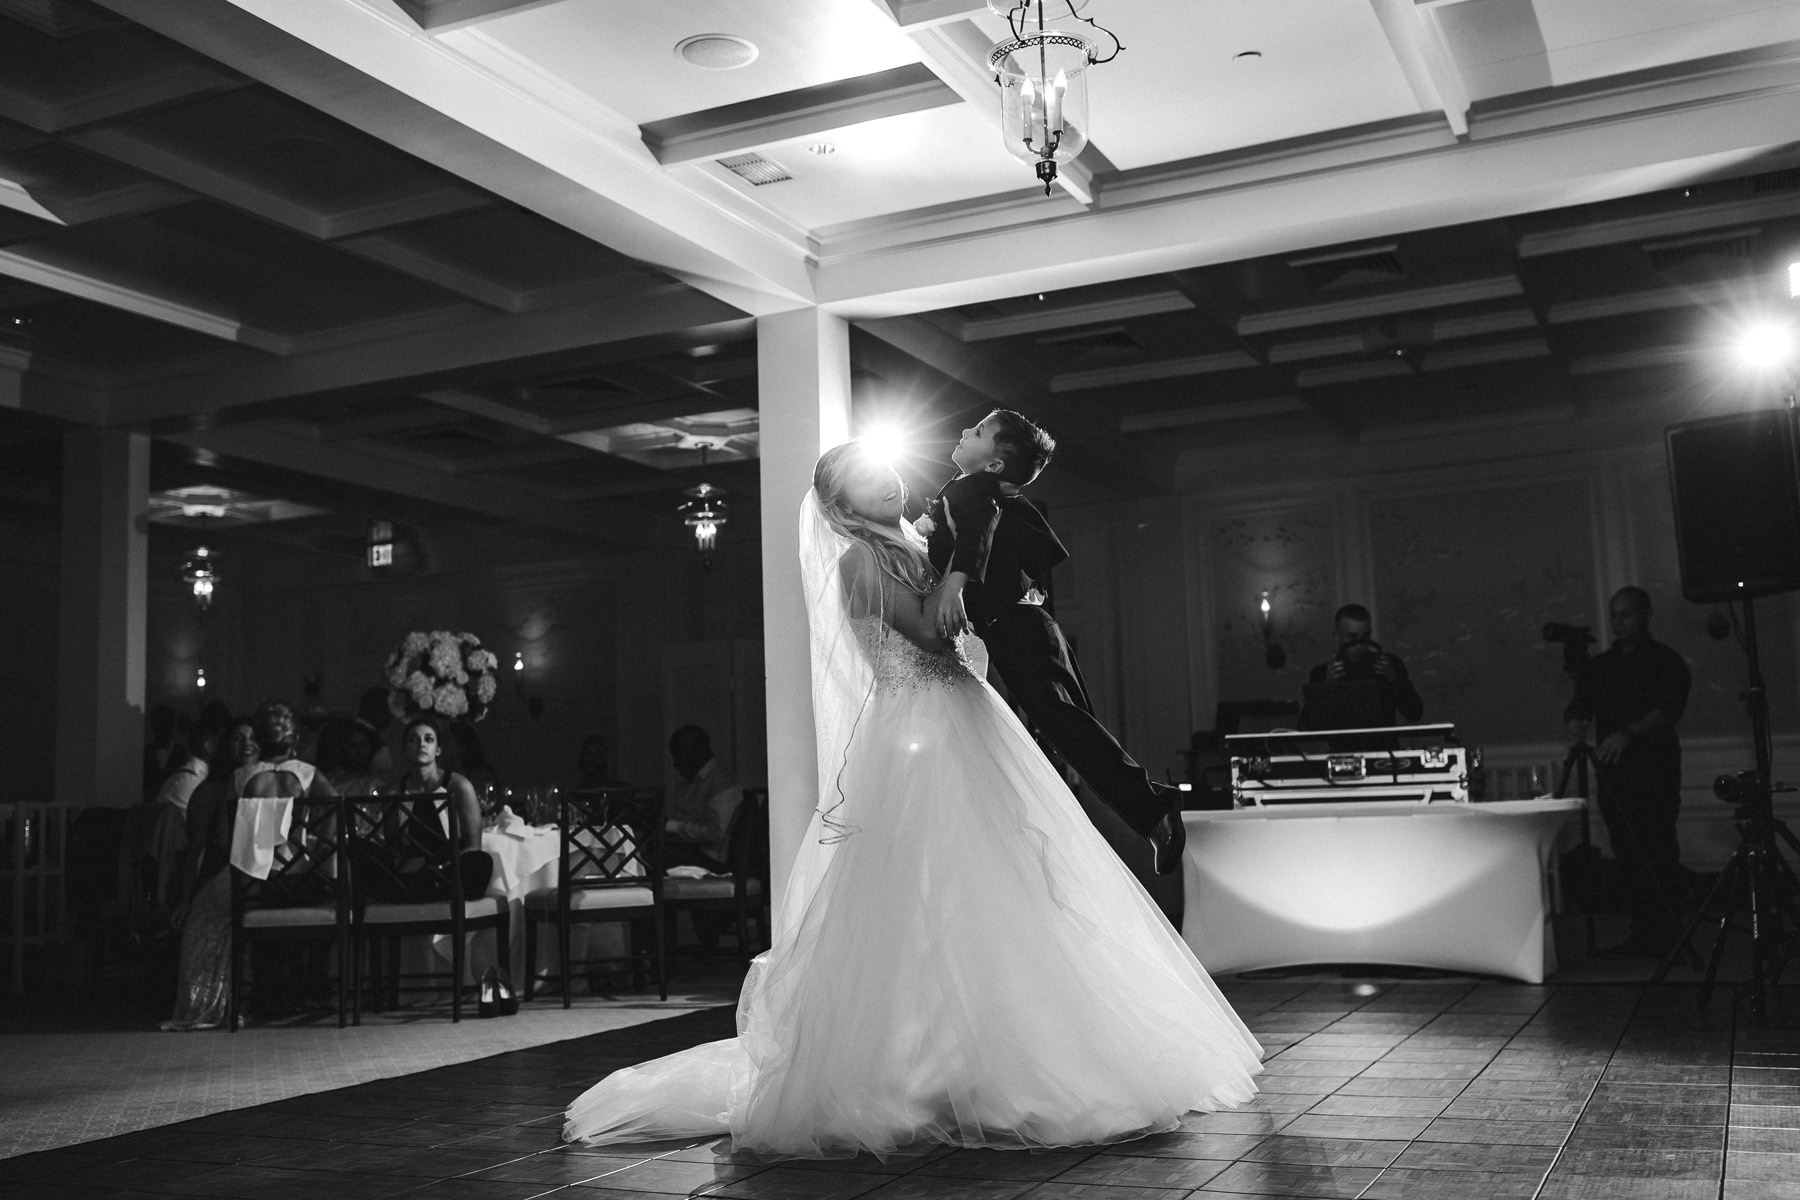 bride-son-dance-black-and-white-wedding-tiny-house-photo.jpg